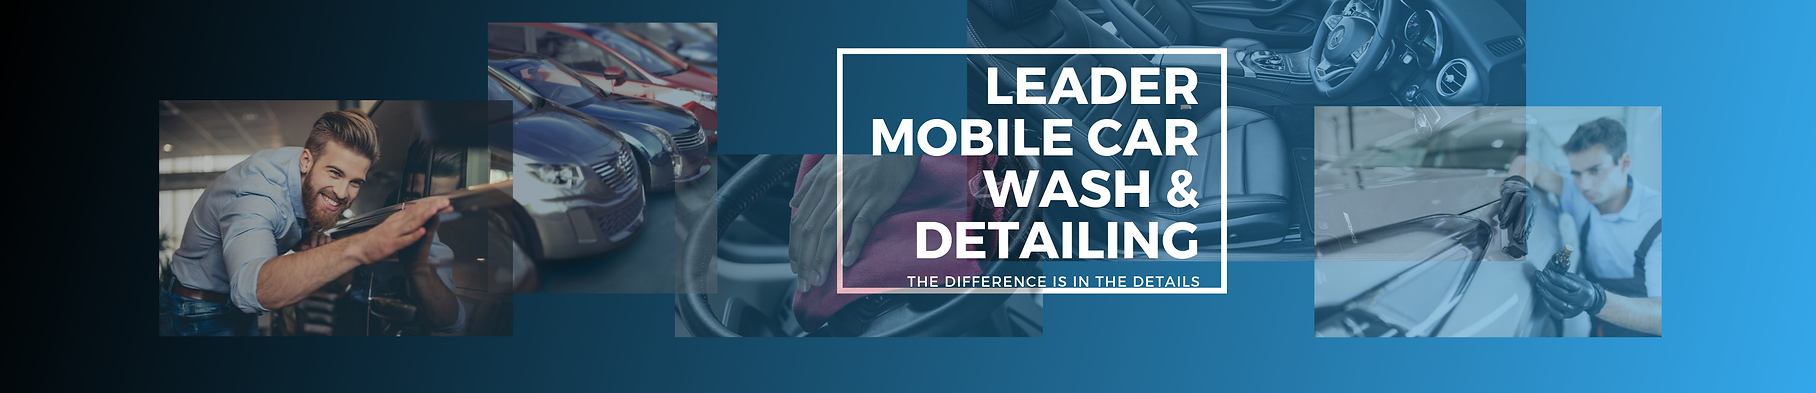 Leader Mobile car wash & Detailing (4).p